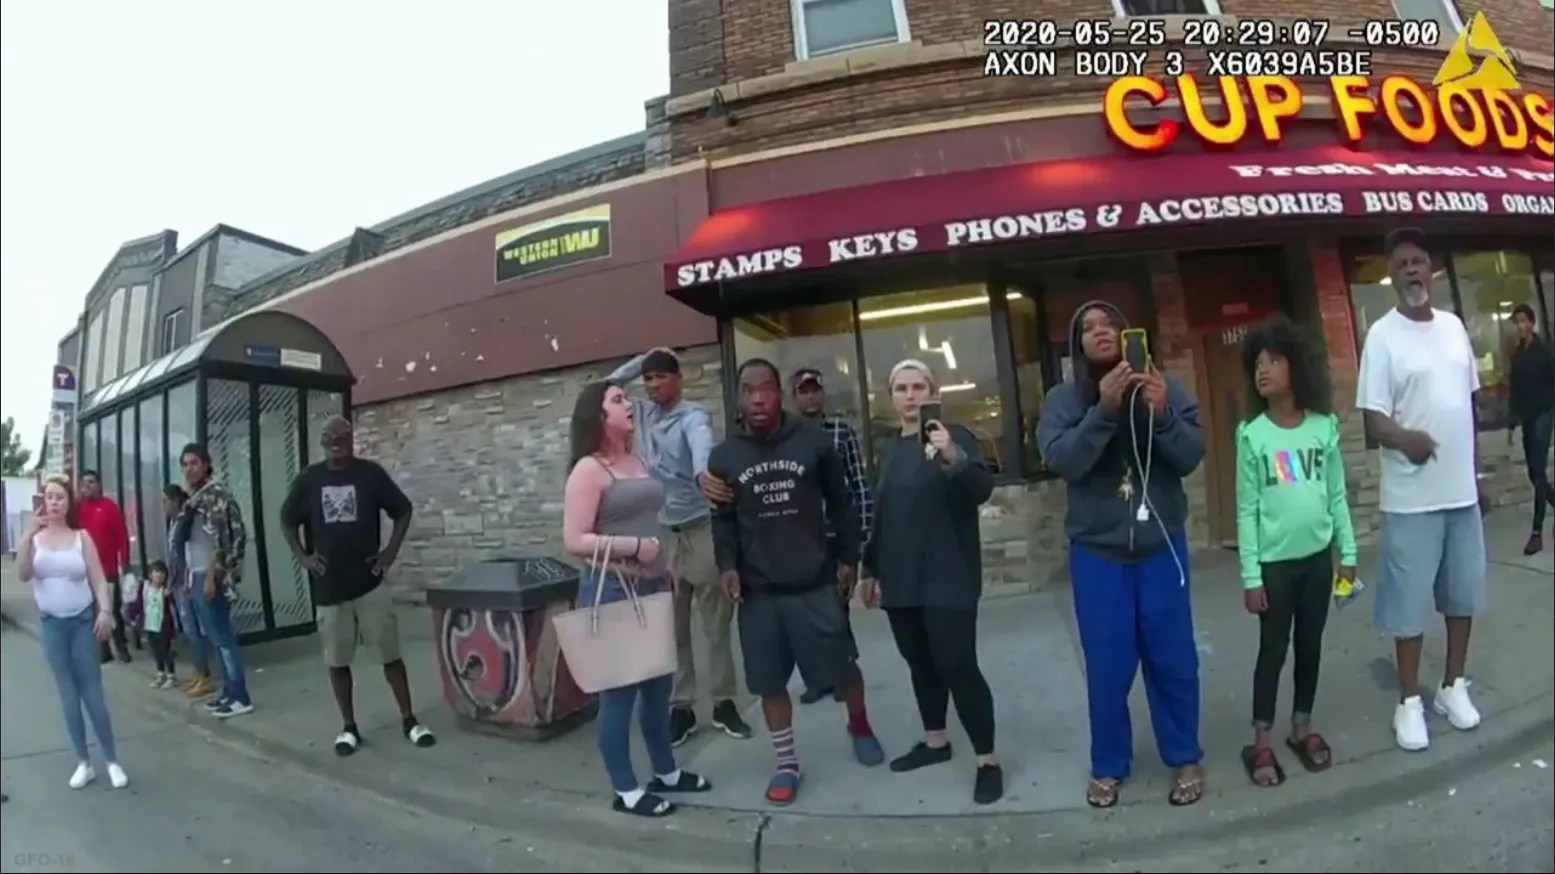 Police body camera shows bystanders watching Minneapolis police officer Derek Chauvin subdue George Floyd in Minneapolis, including Alyssa Funari, left, filming; Charles McMillian, center left in light colored shorts; Christopher Martin, center in gray; Donald Williams, center in black; Genevieve Hansen, fourth from right, filming; and Darnella Frazier, third from right, filming.